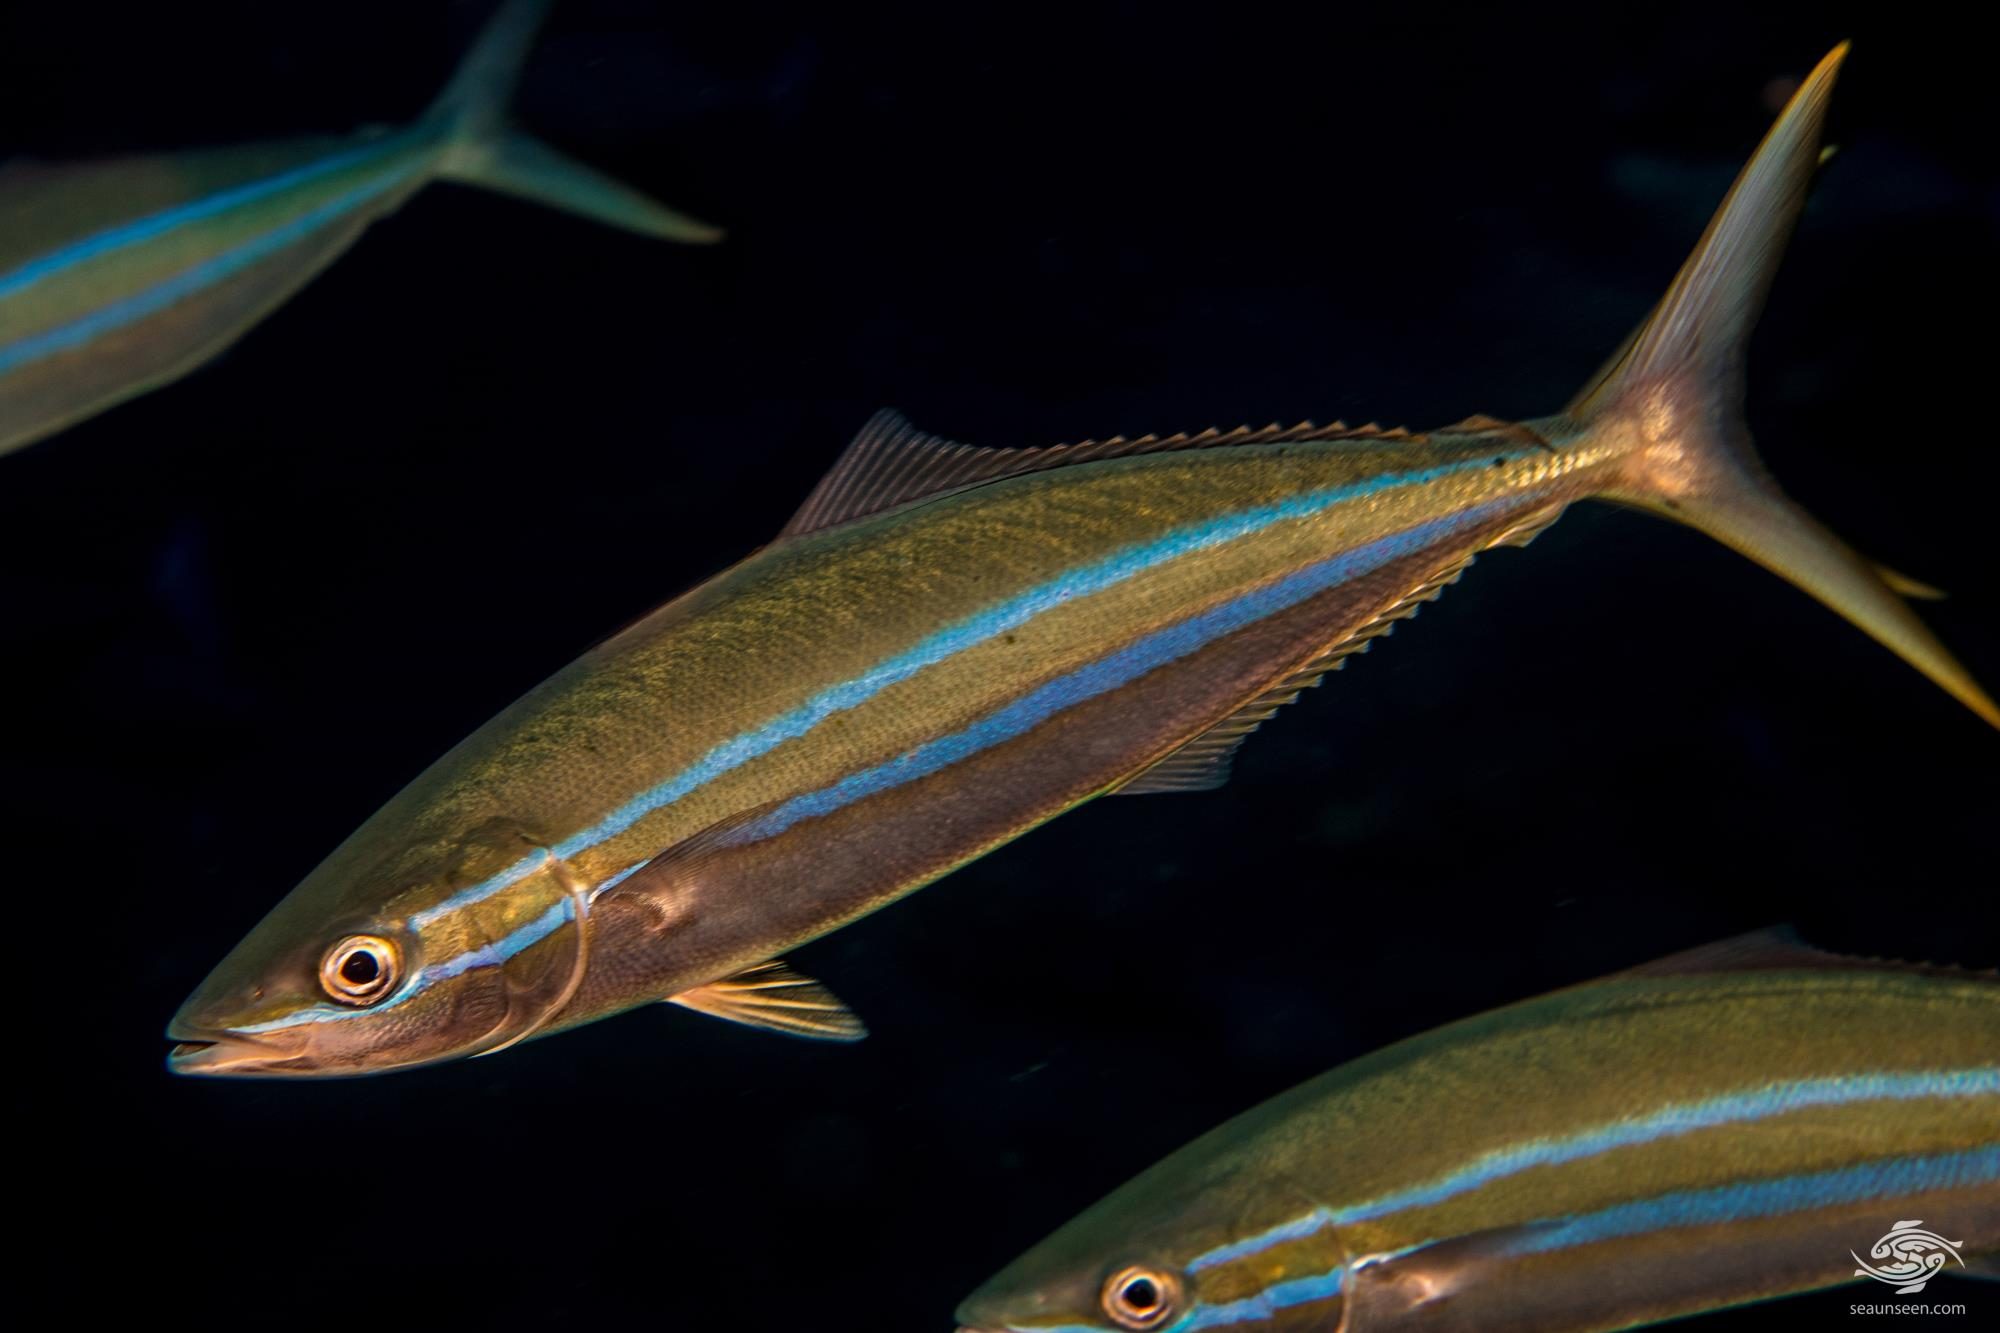 rainbow runner (Elagatis bipinnulata), also known as the Prodigal Son, Spanish jack and Hawaiian salmon